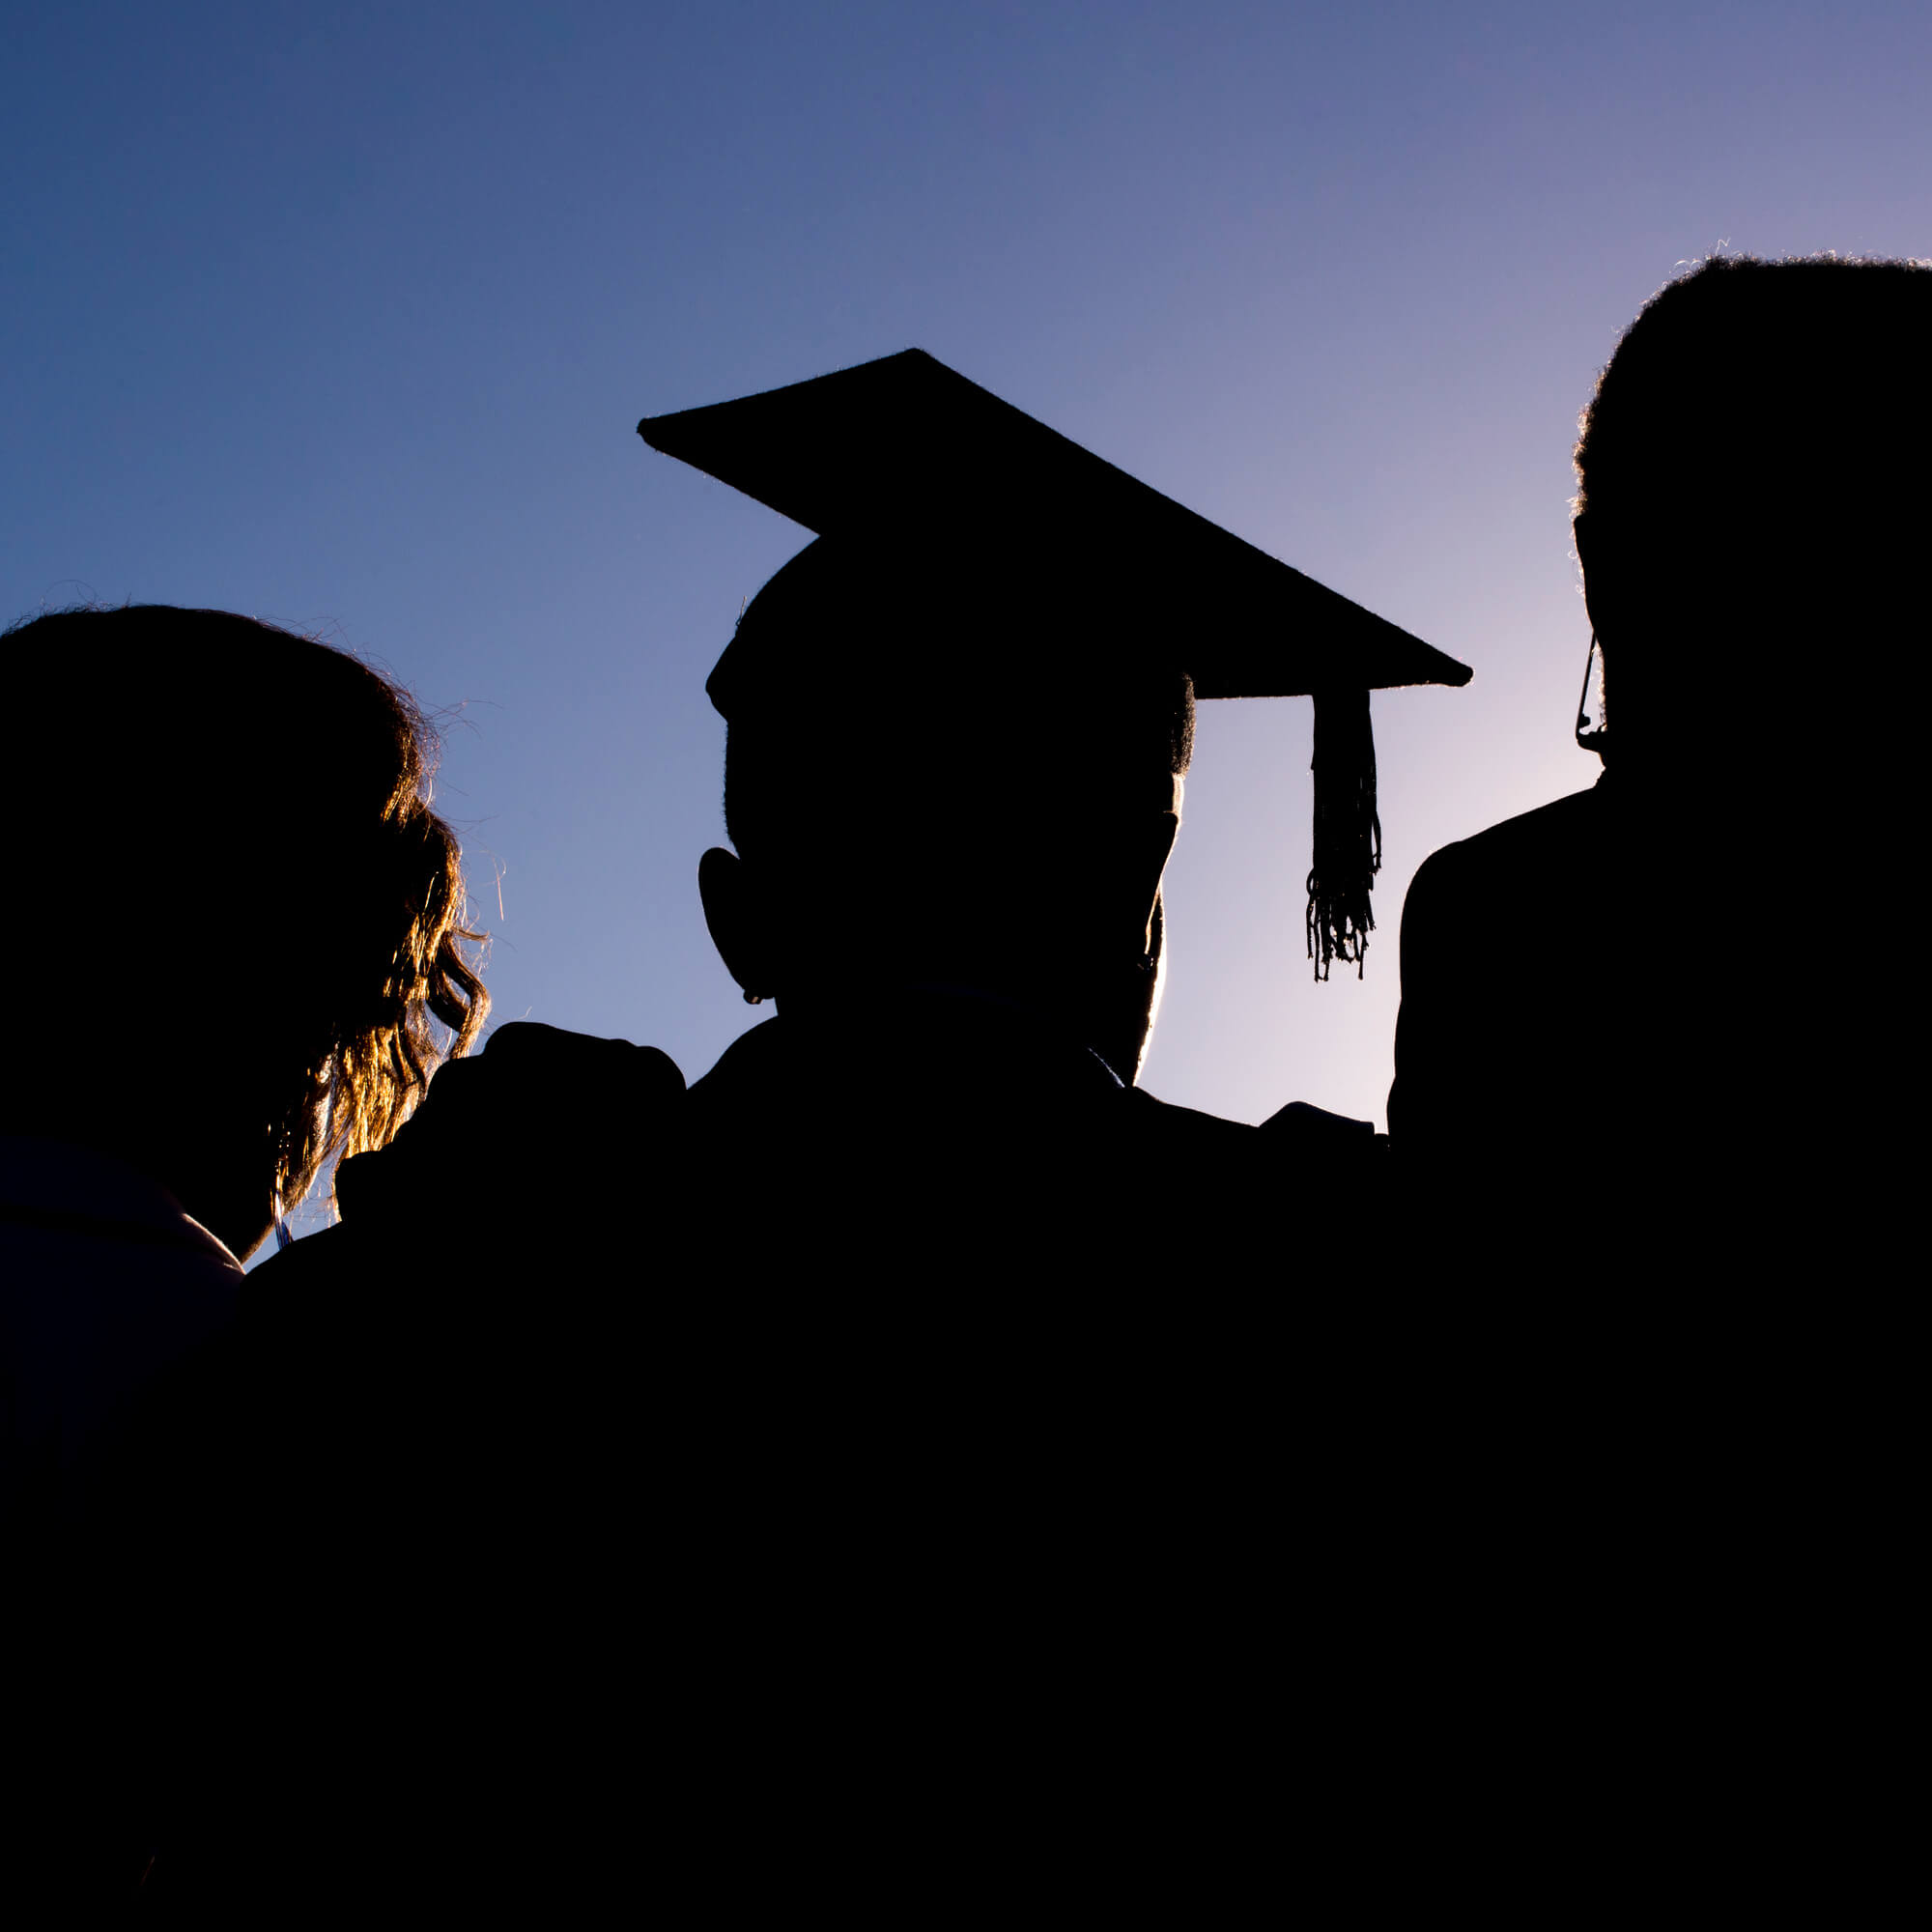 A silhouette of a graduate wearing a graduation cap